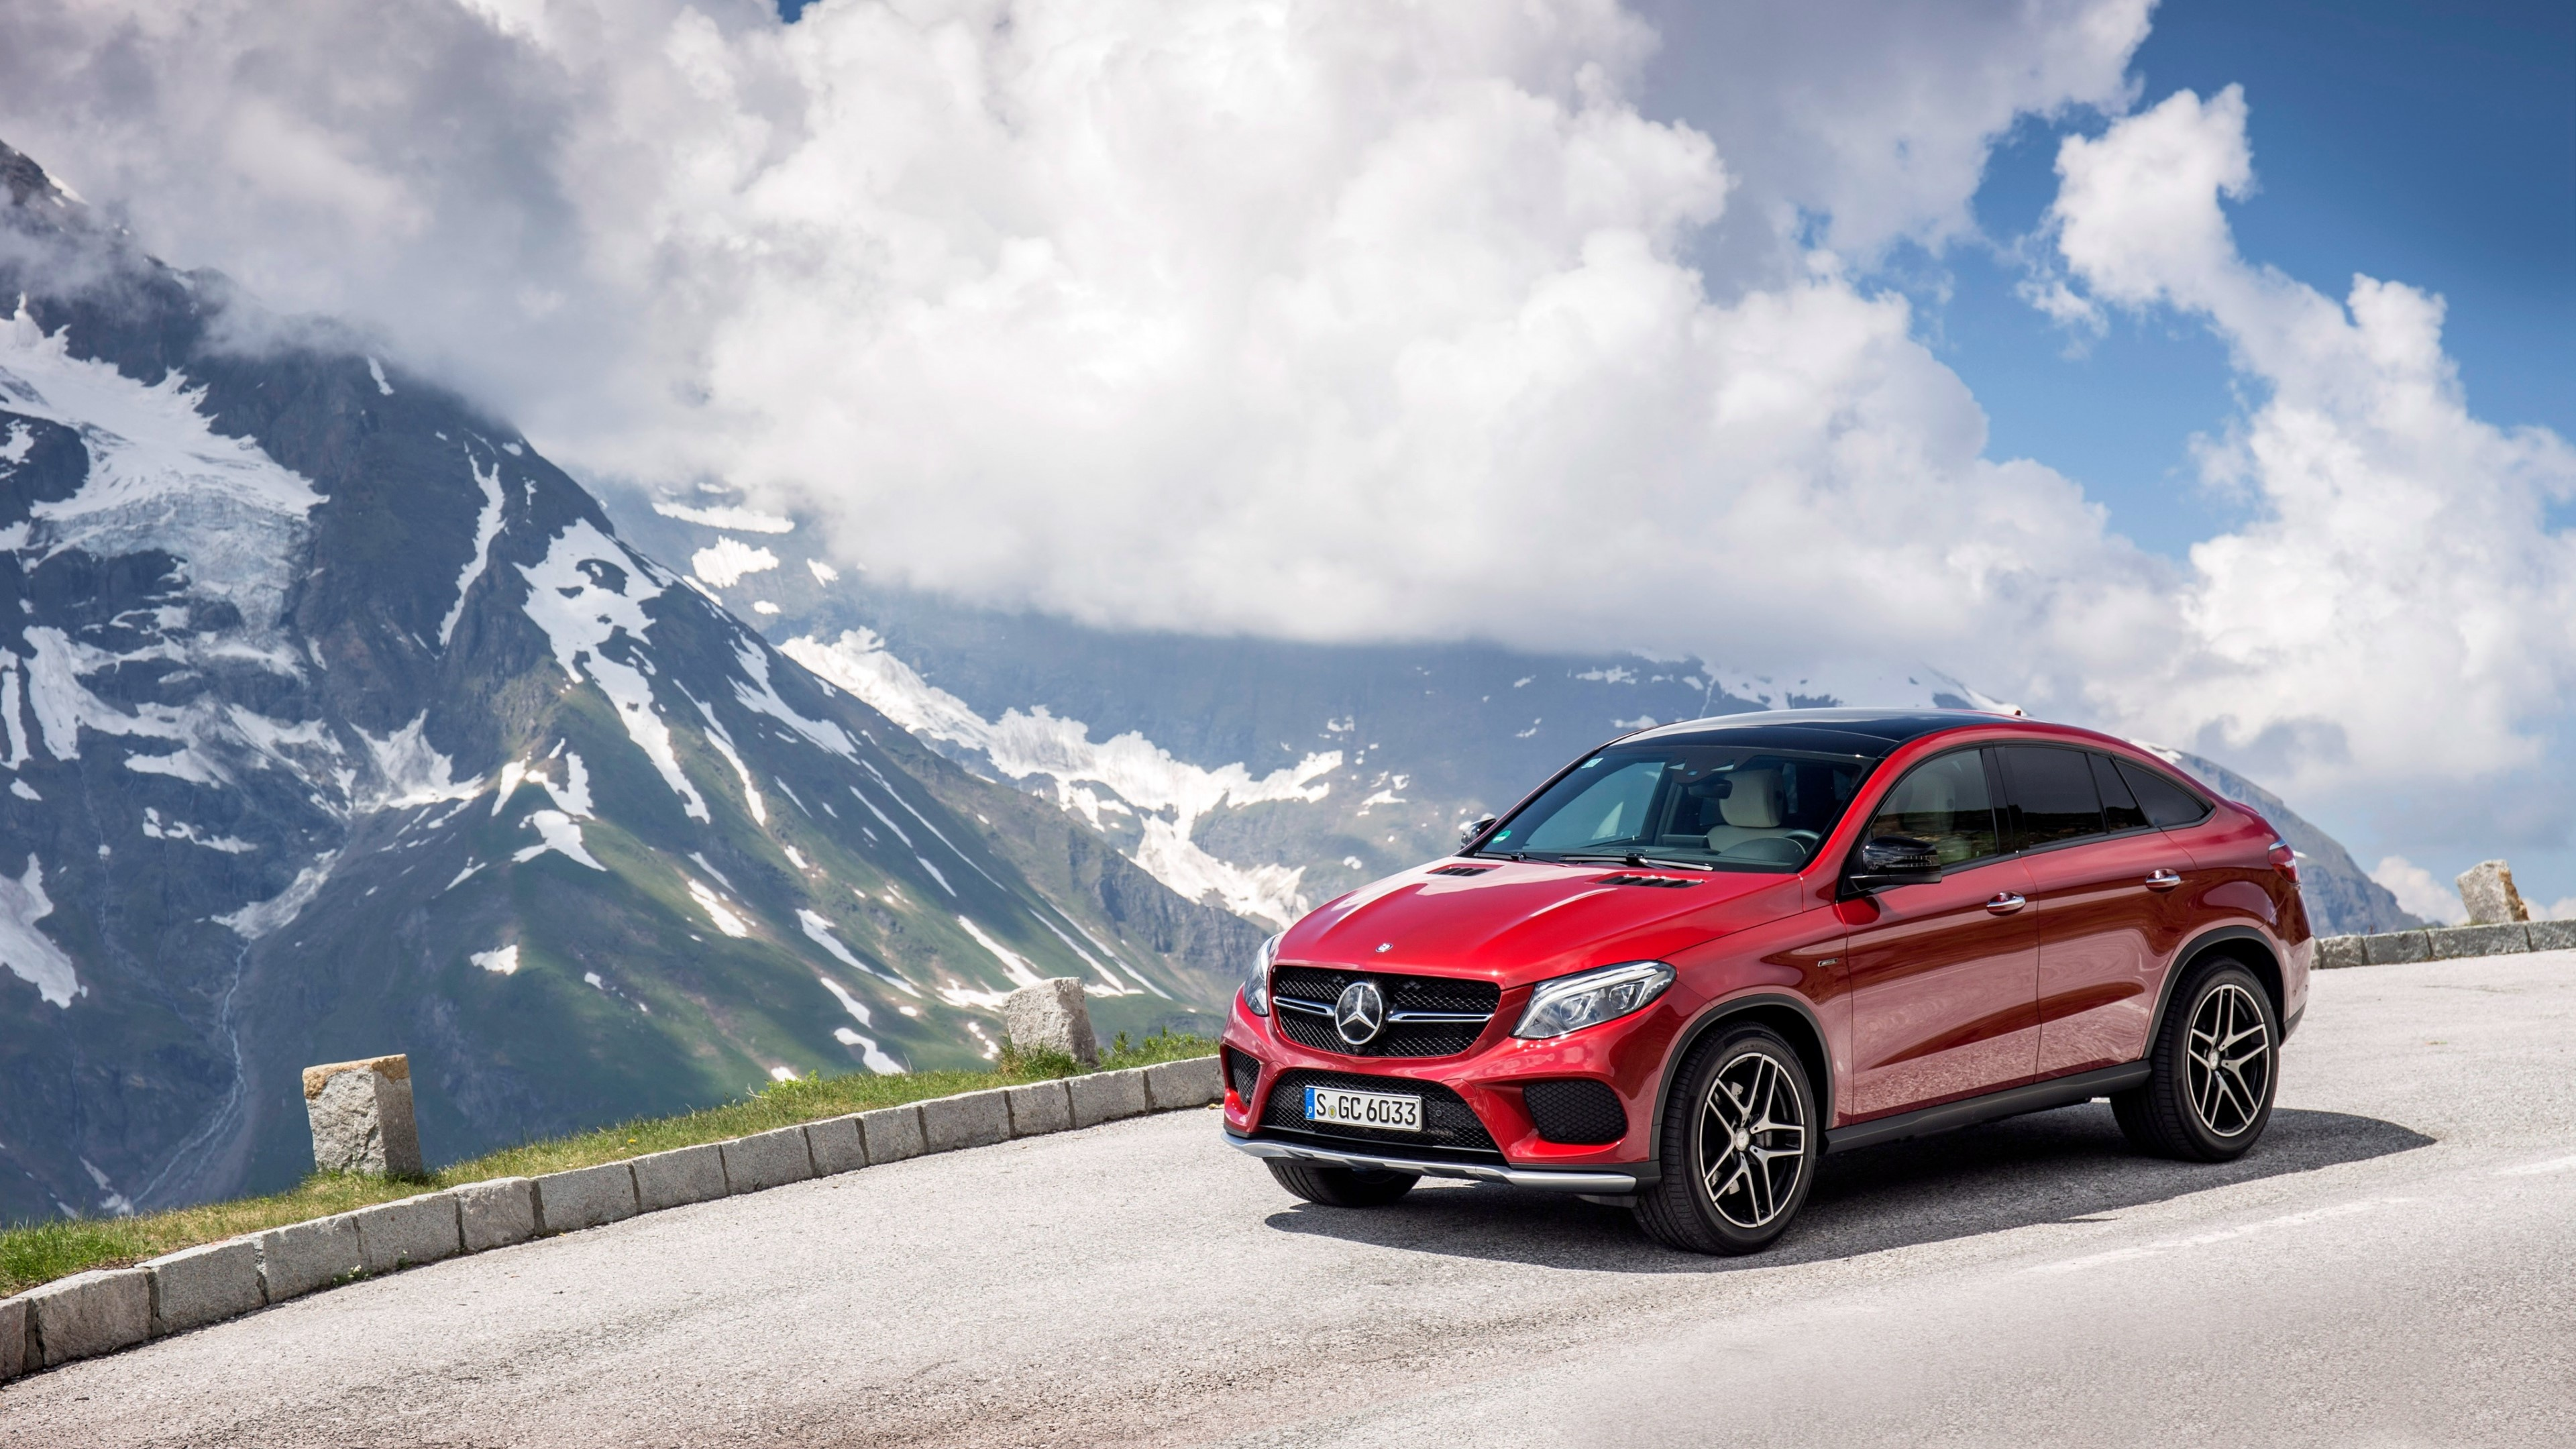 Wallpaper Mercedes Benz GLE 450 AMG Red in mountains